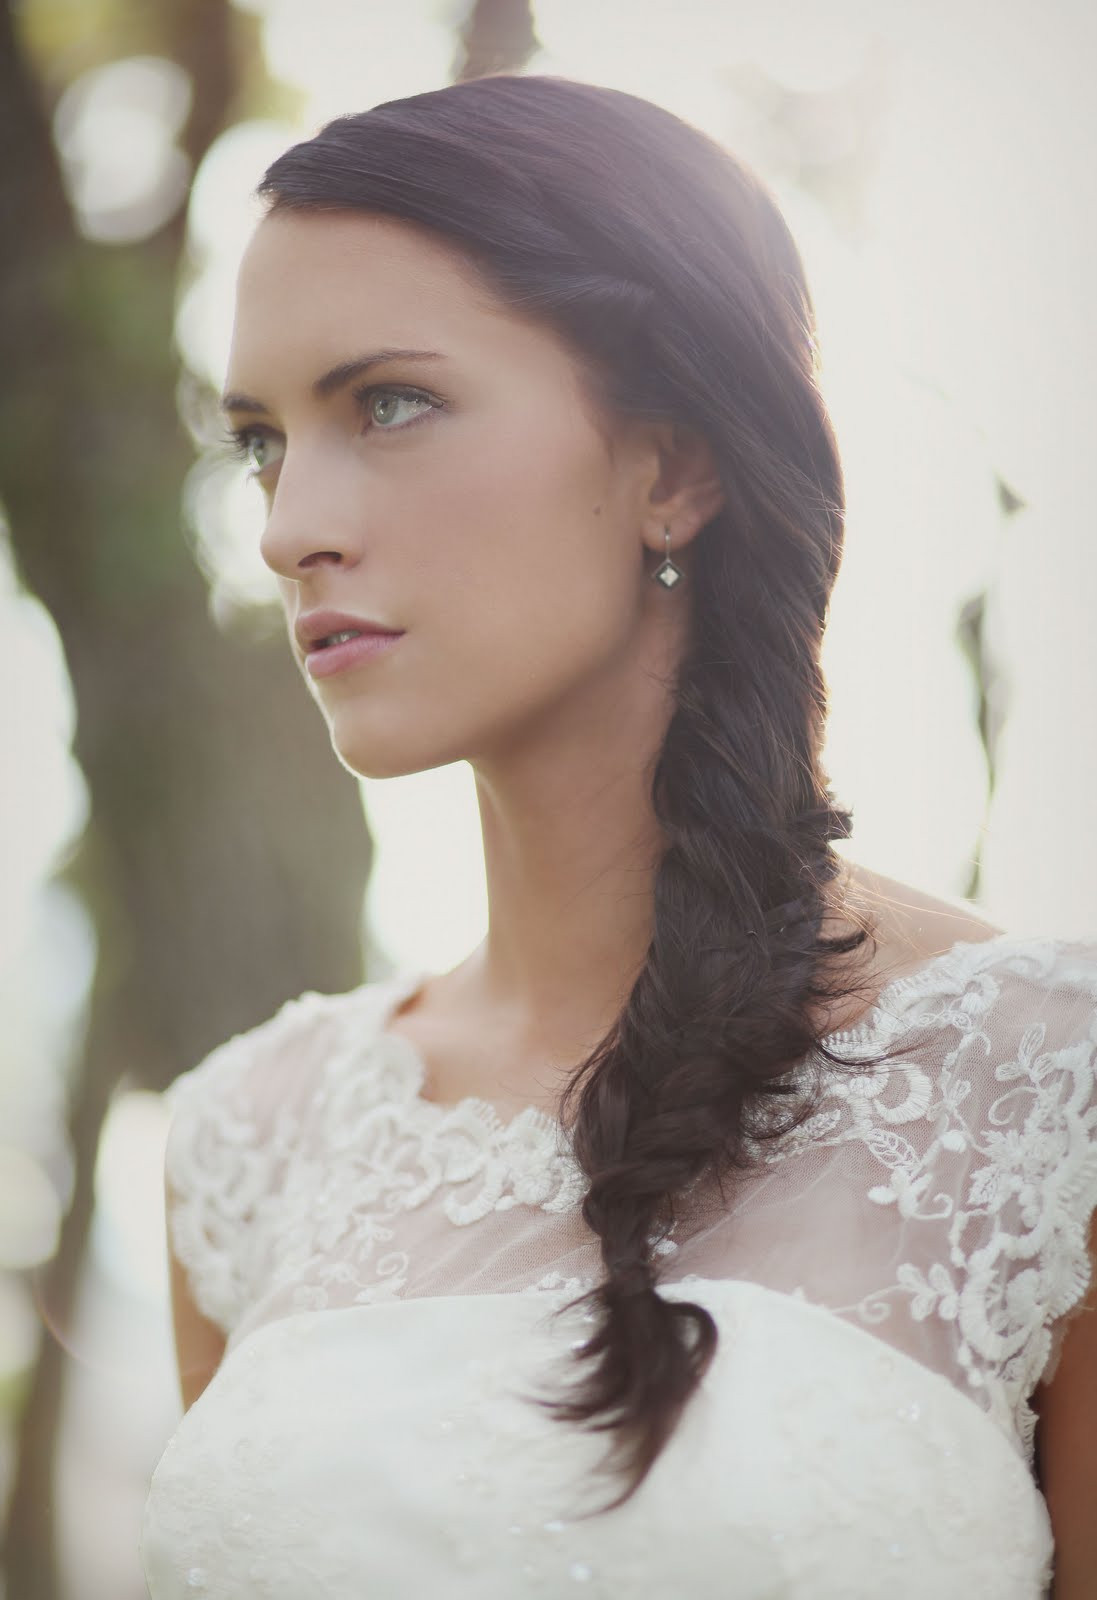 Best ideas about Brides Hairstyles . Save or Pin 10 Bridal Hairstyle Ideas for Fine Hair Hair World Magazine Now.